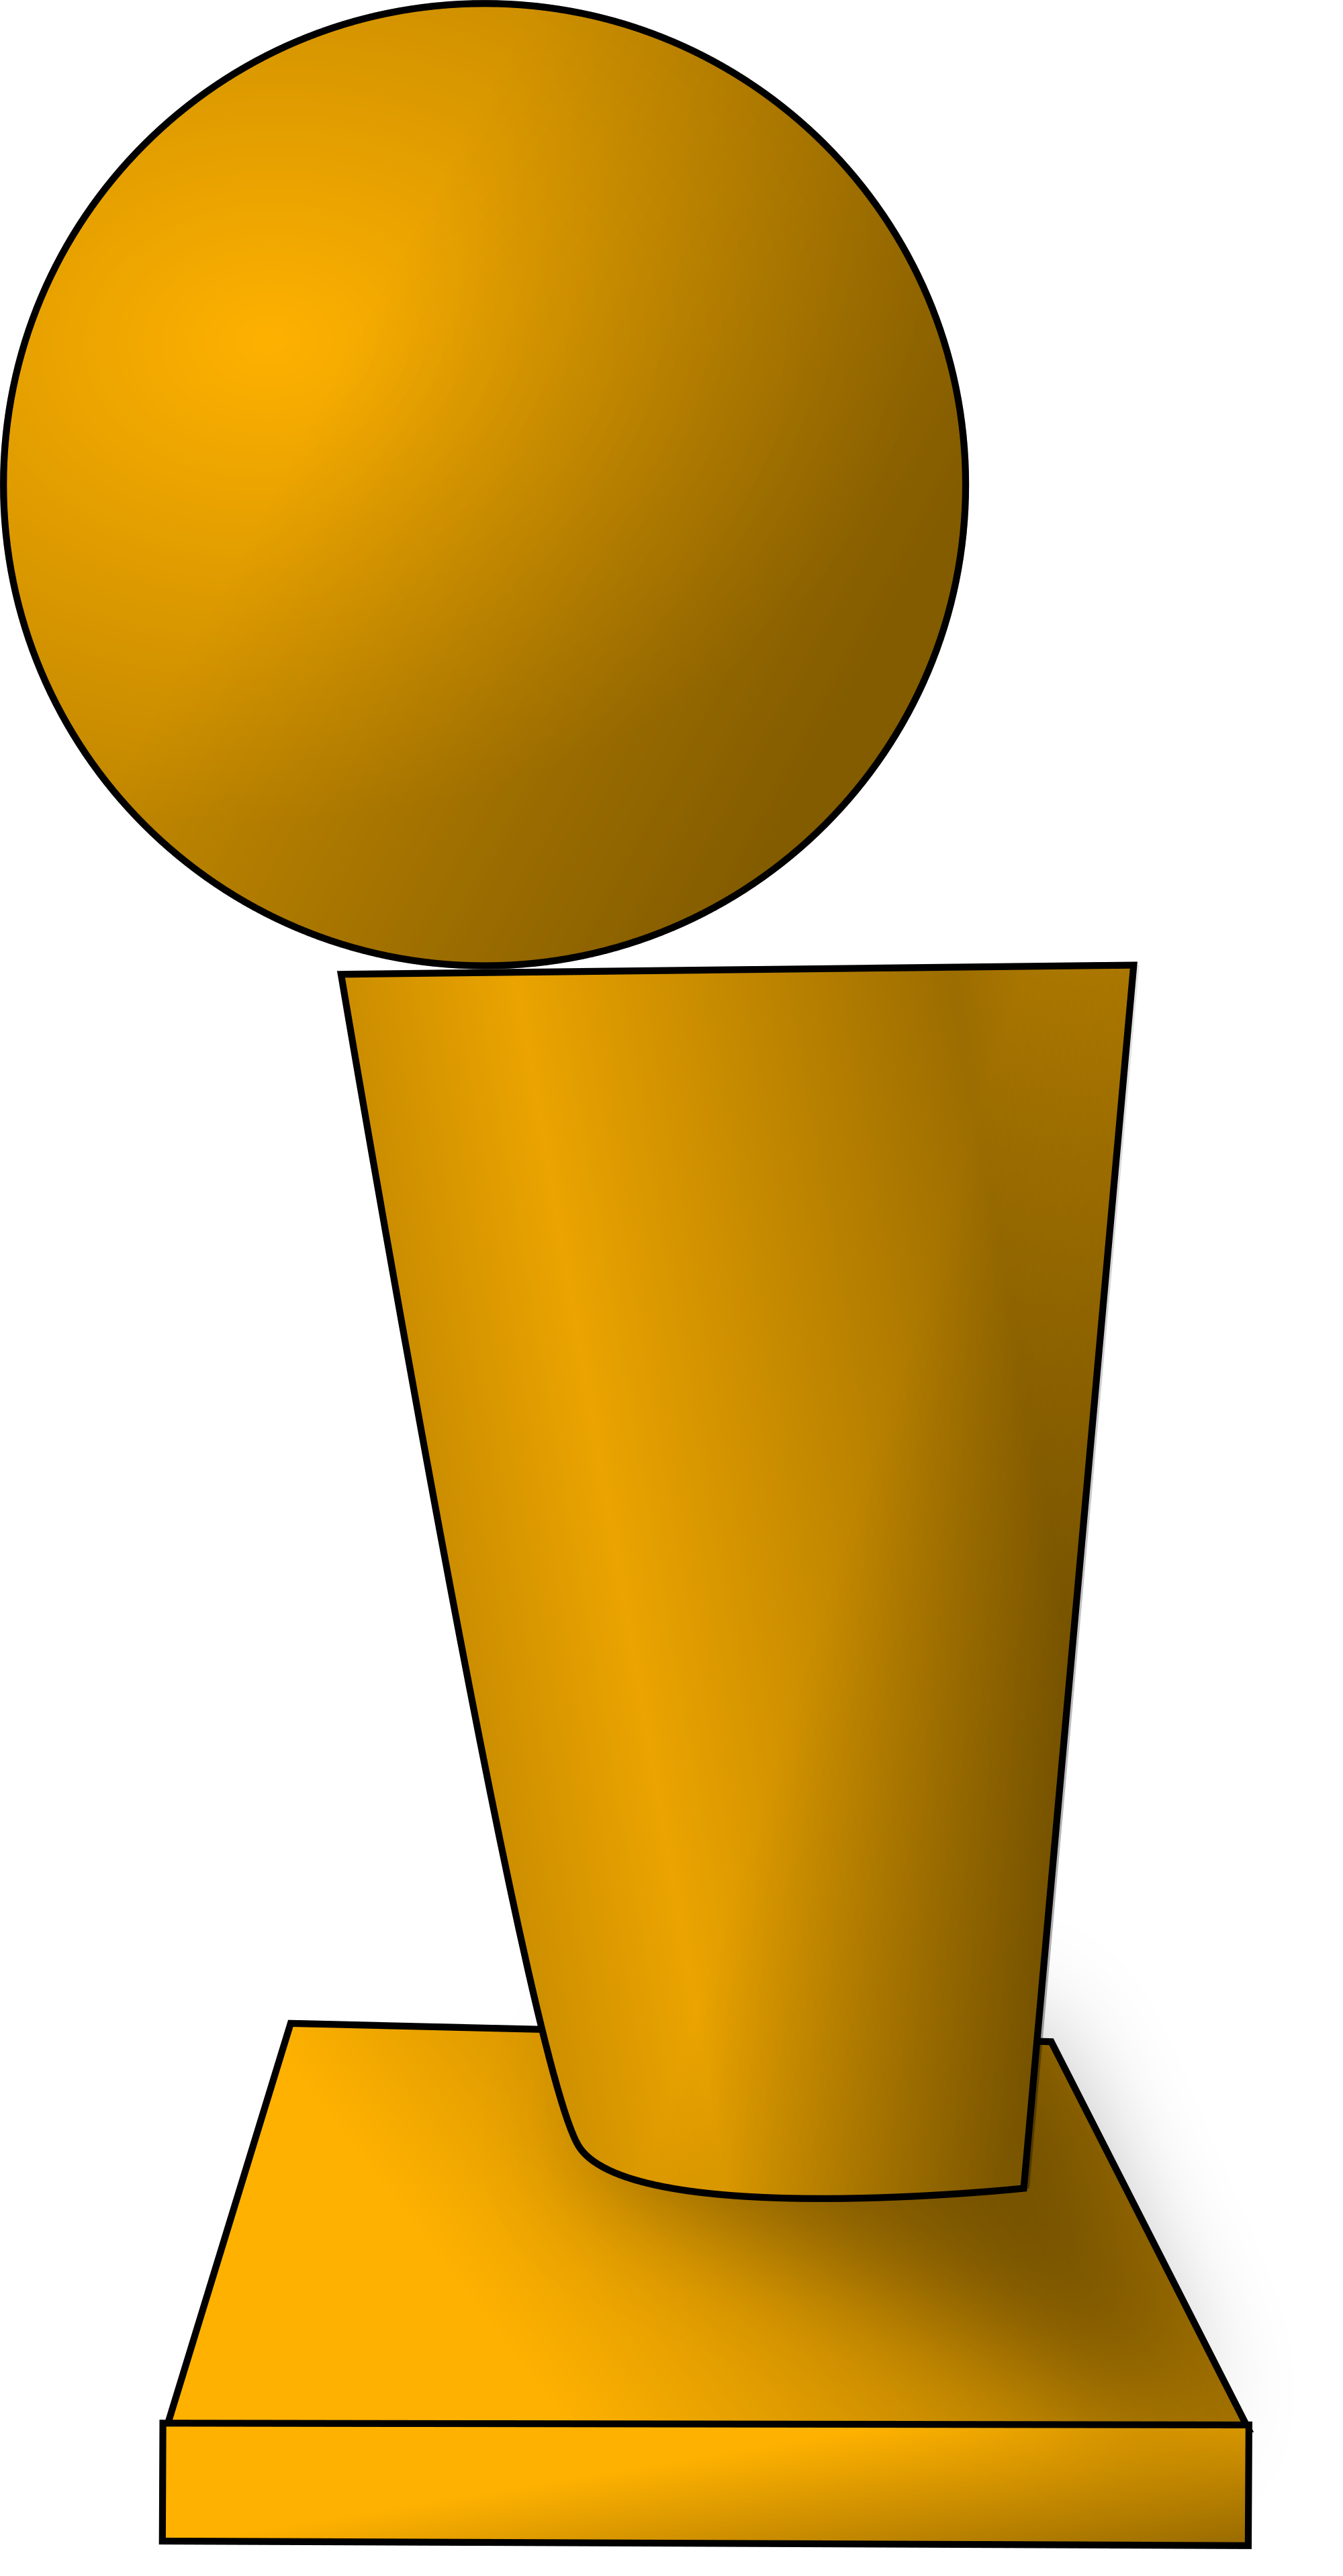 Softball clipart trophy. Basketball championship free collection